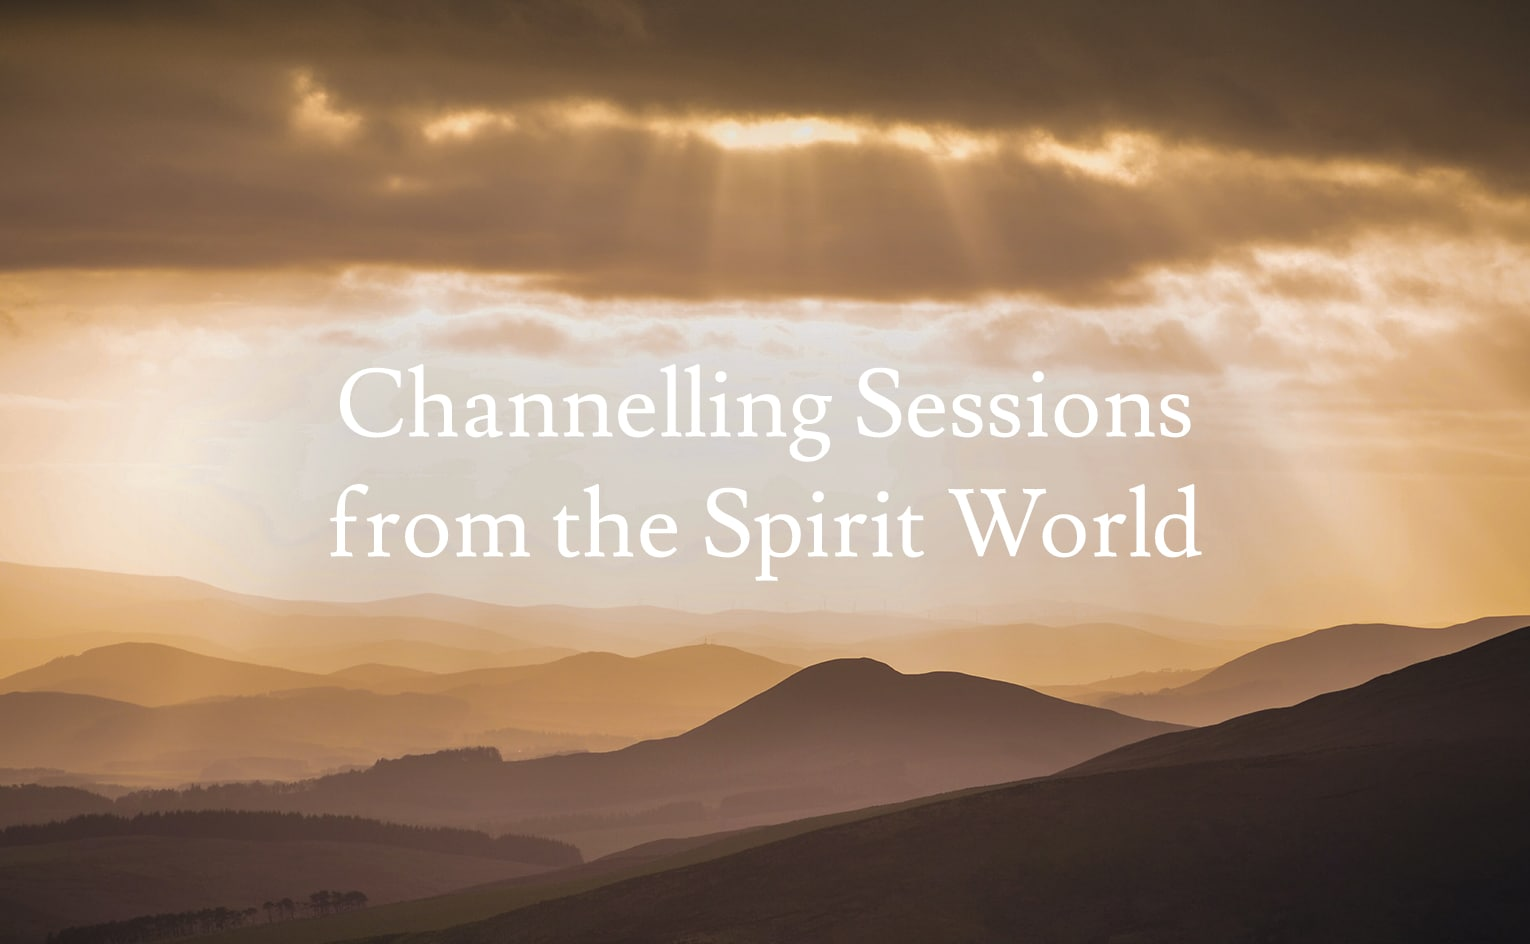 Channelling Sessions from the Spirit World